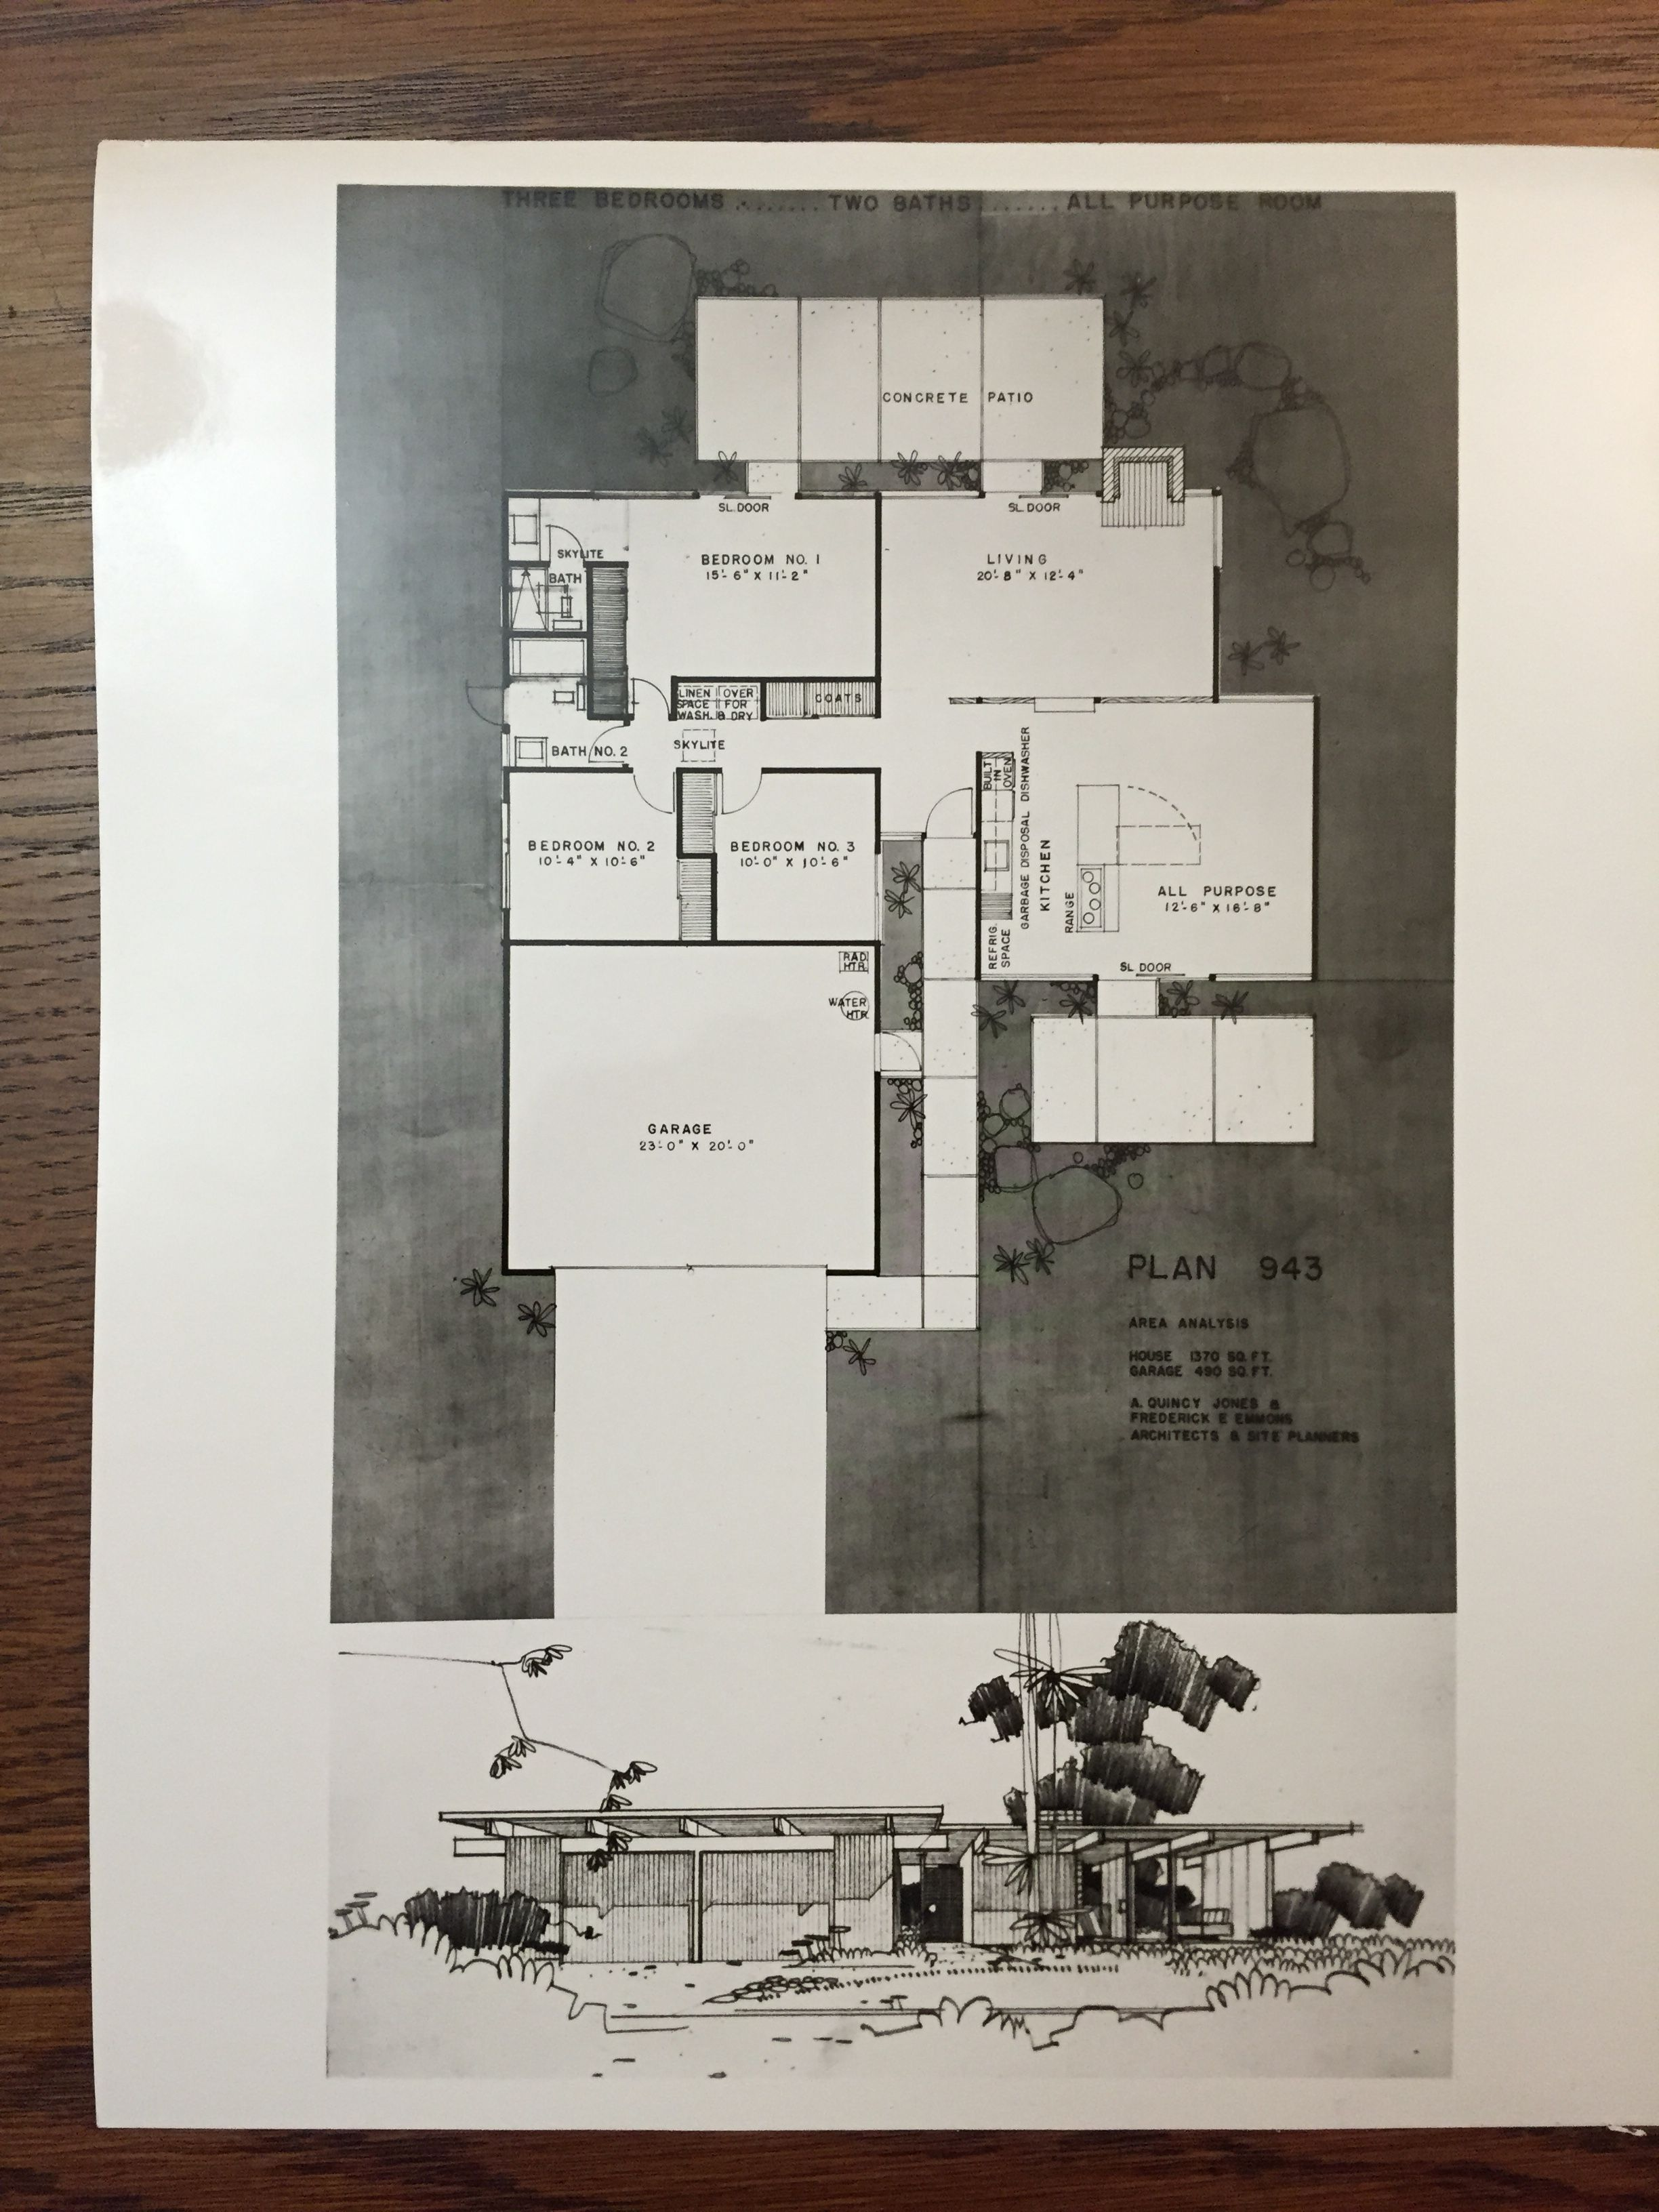 Eichler Homes floor plan 943 (Original at UCLA Library Special Collection, A. Quincy Jones Papers)